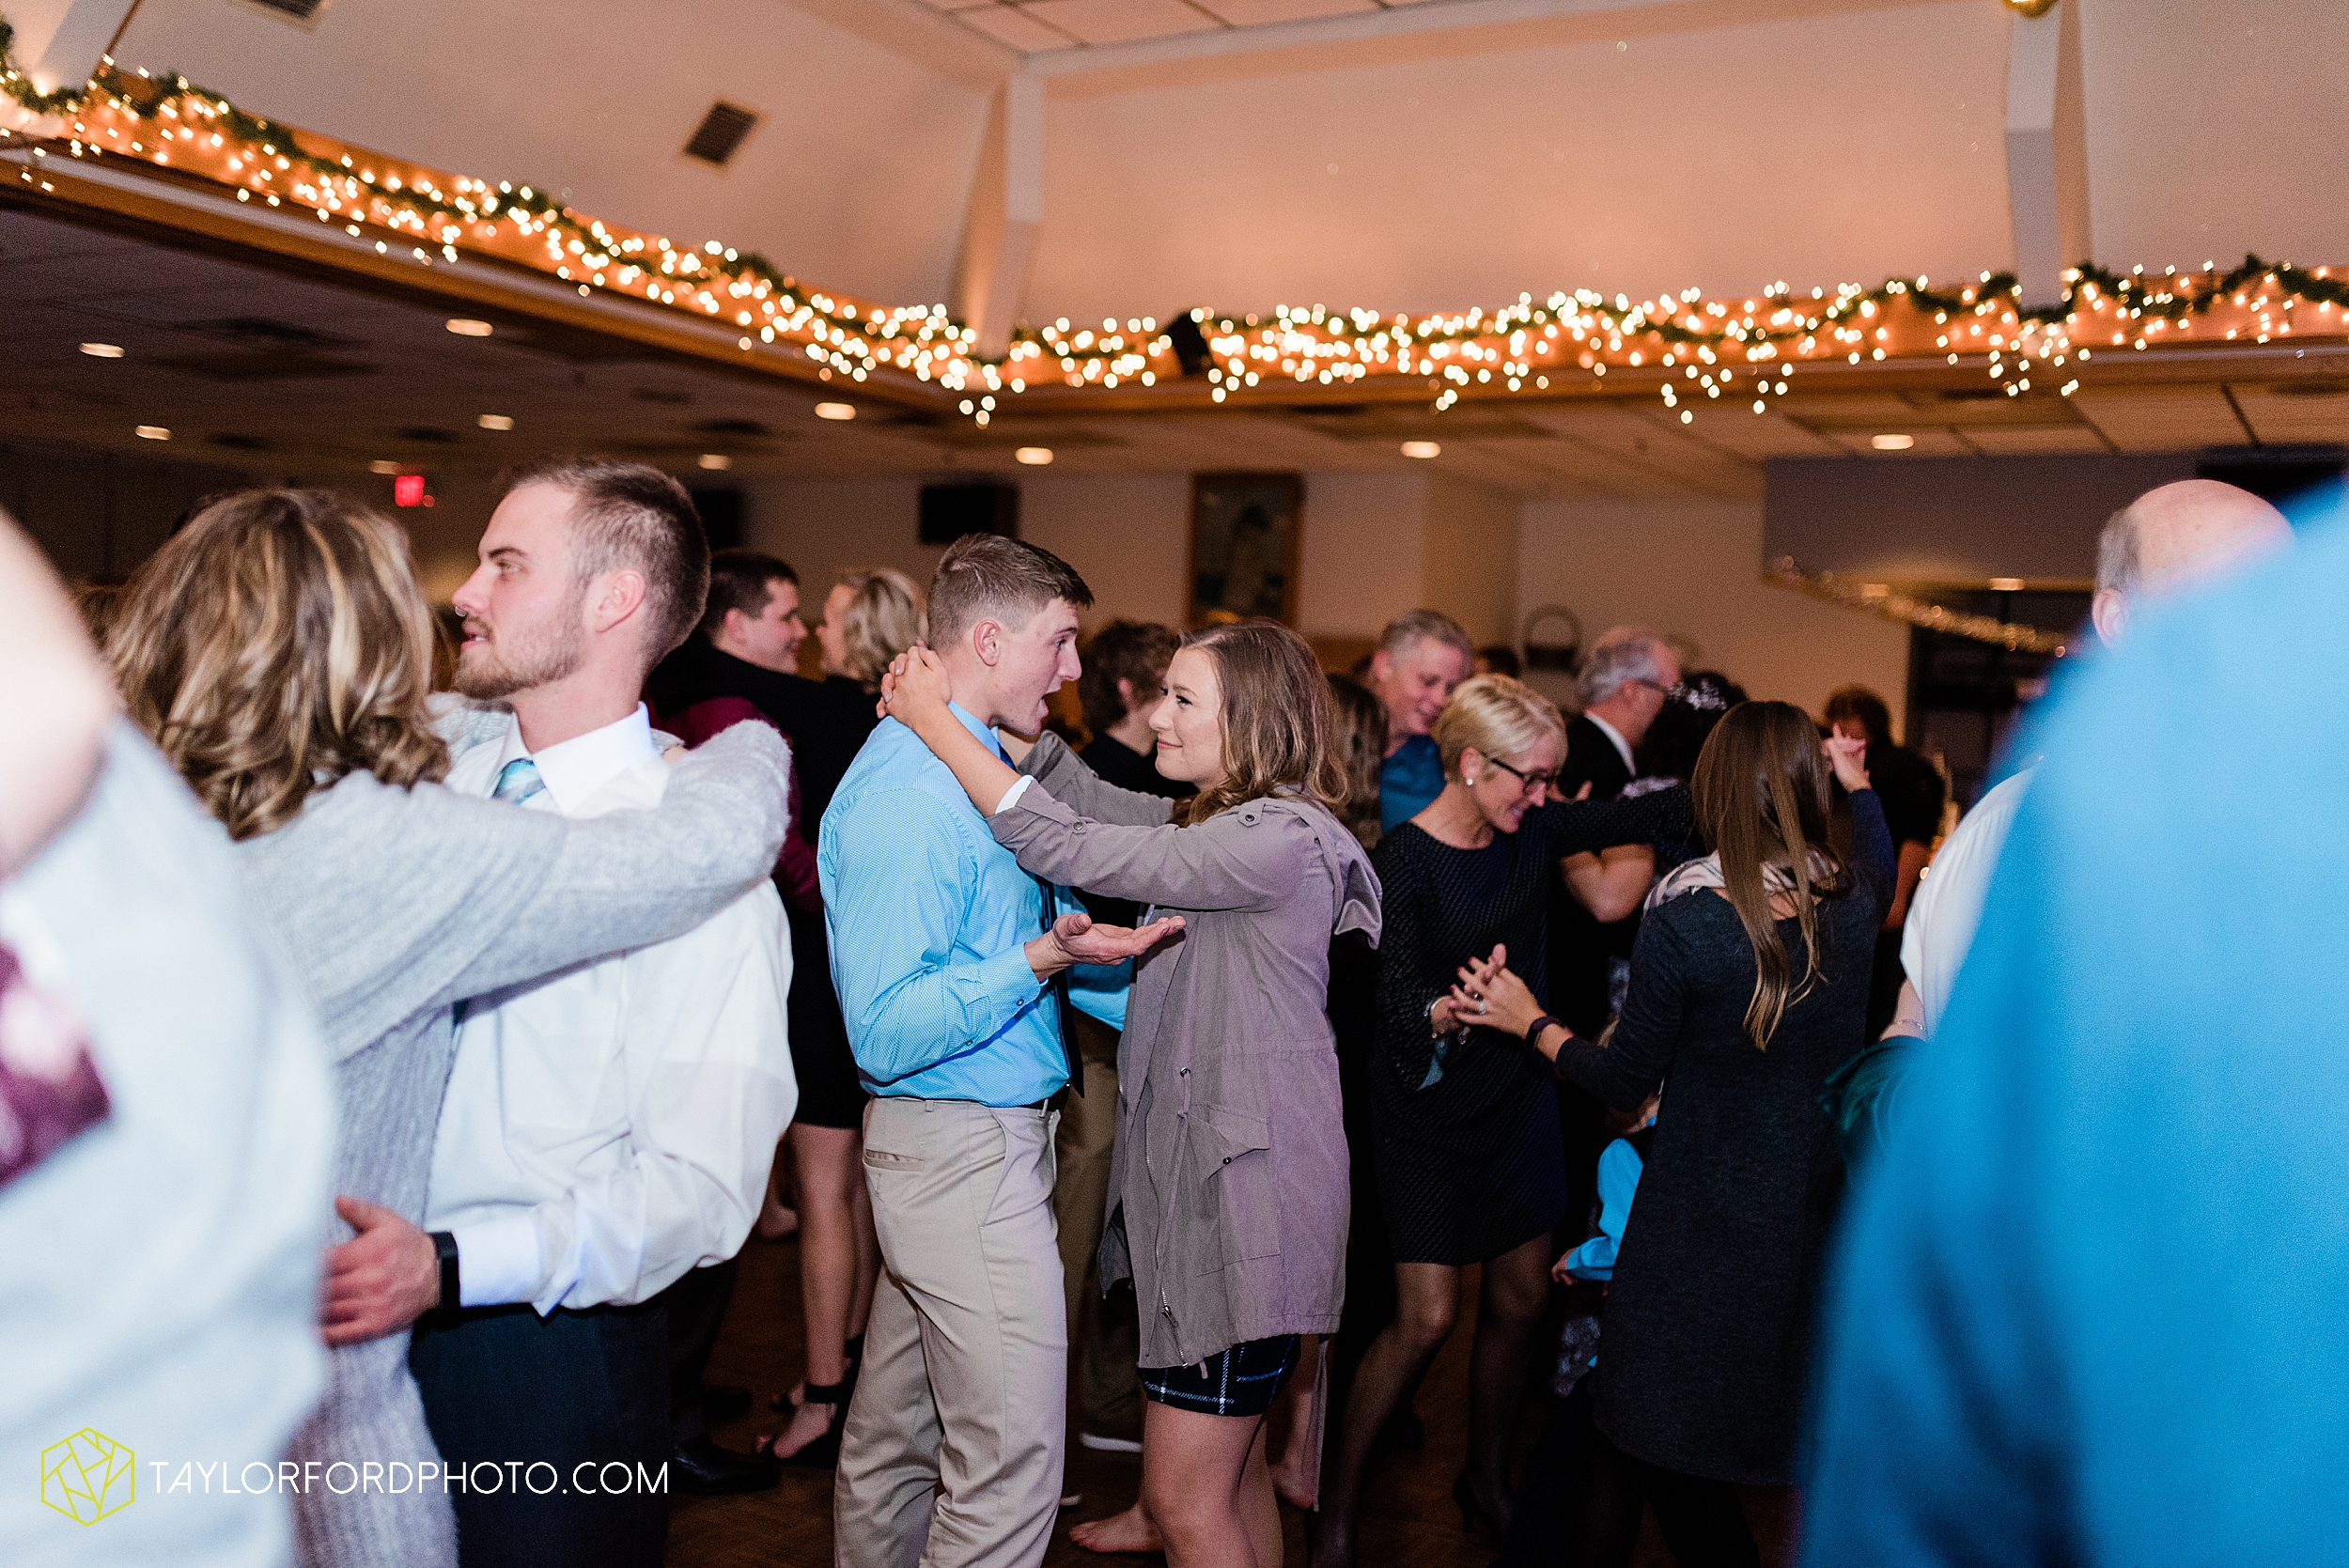 pleasant-view-church-christmas-celina-fraternal-order-of-eagles-reception-wedding-wren-willshire-van-wert-ohio-photography-taylor-ford-hirschy-photographer_2210.jpg